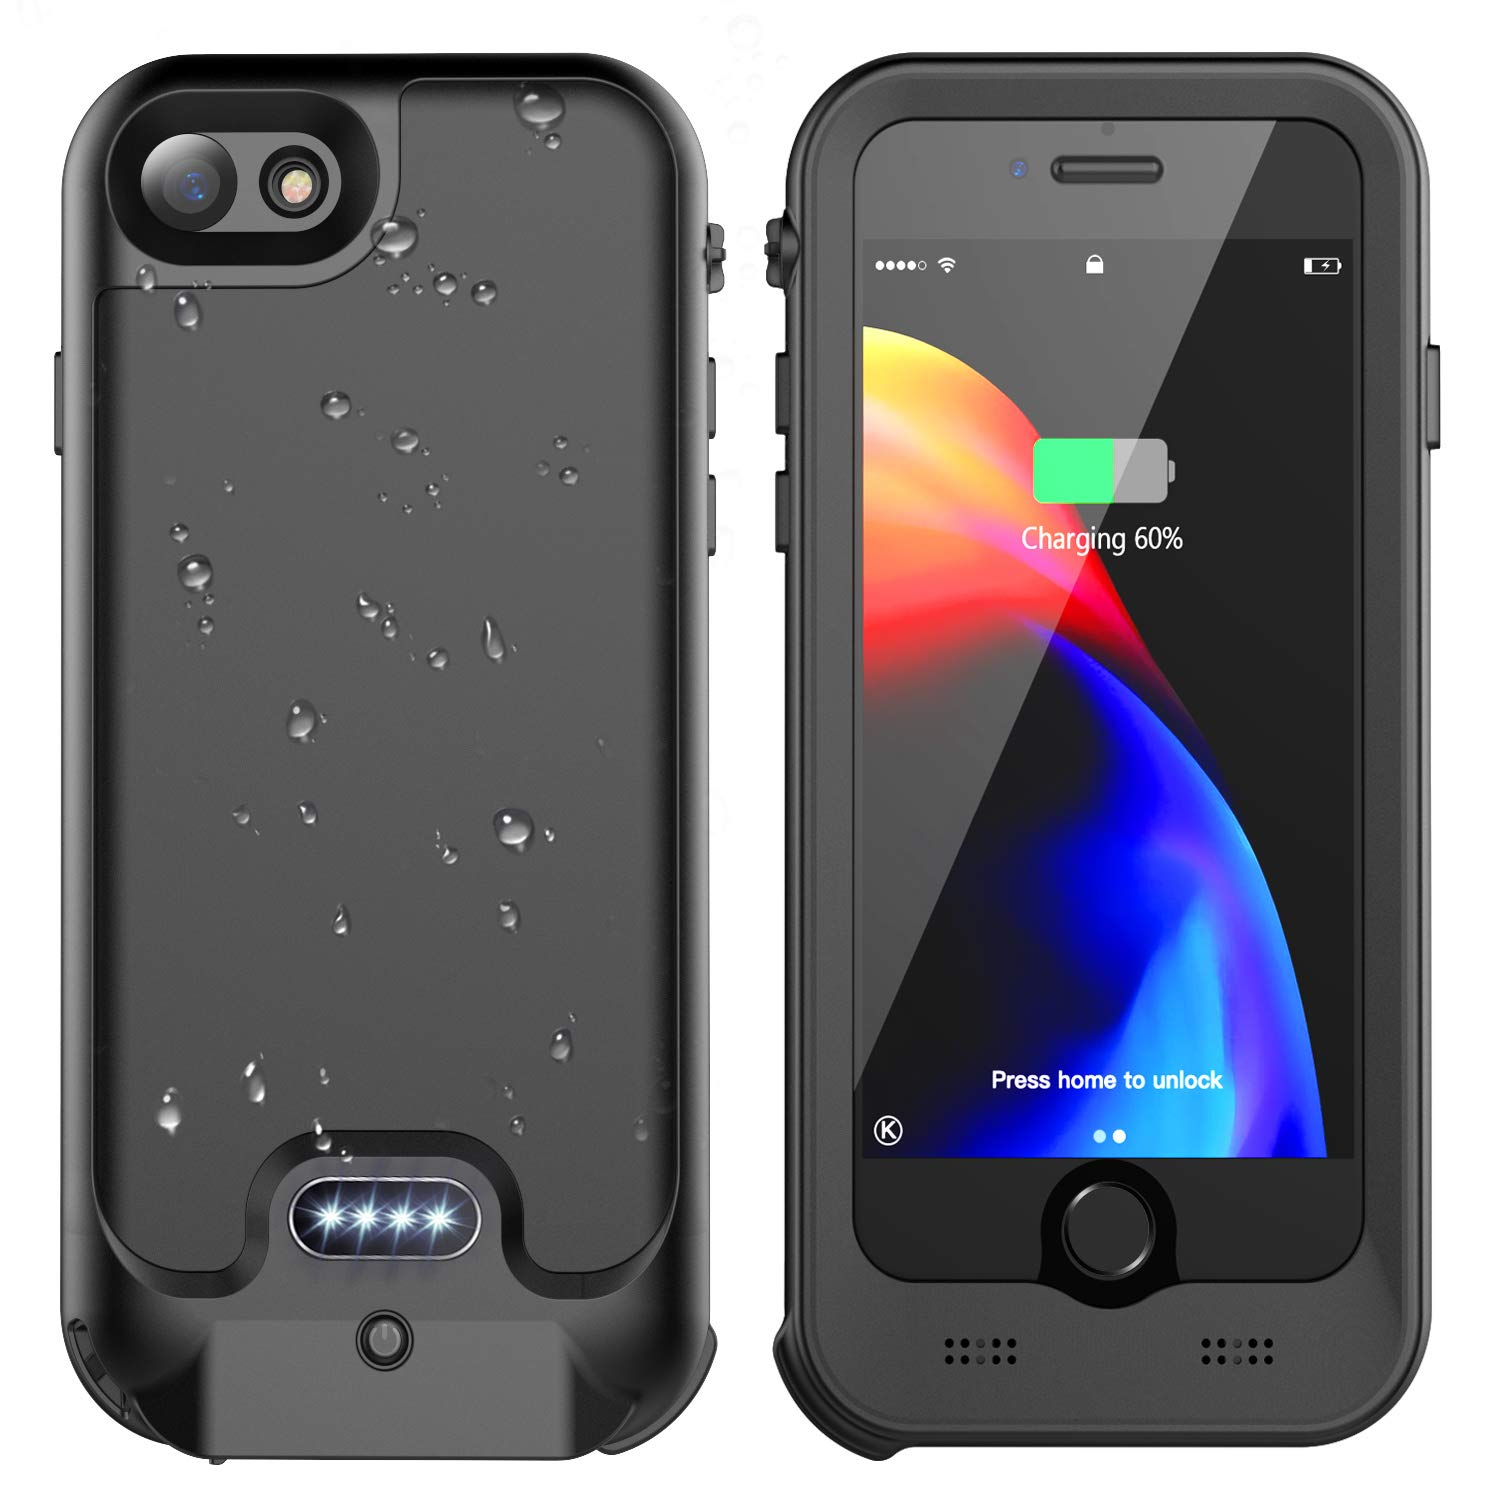 iPhone 7/8 Battery Case, ATOP 3200mAh Slim Portable Charger Case with Built-in Screen Protector Compatible QI Wireless Charging IPX5 Waterproof Heavy Duty Shockproof Charging Case (4.7 inch) by ATOP